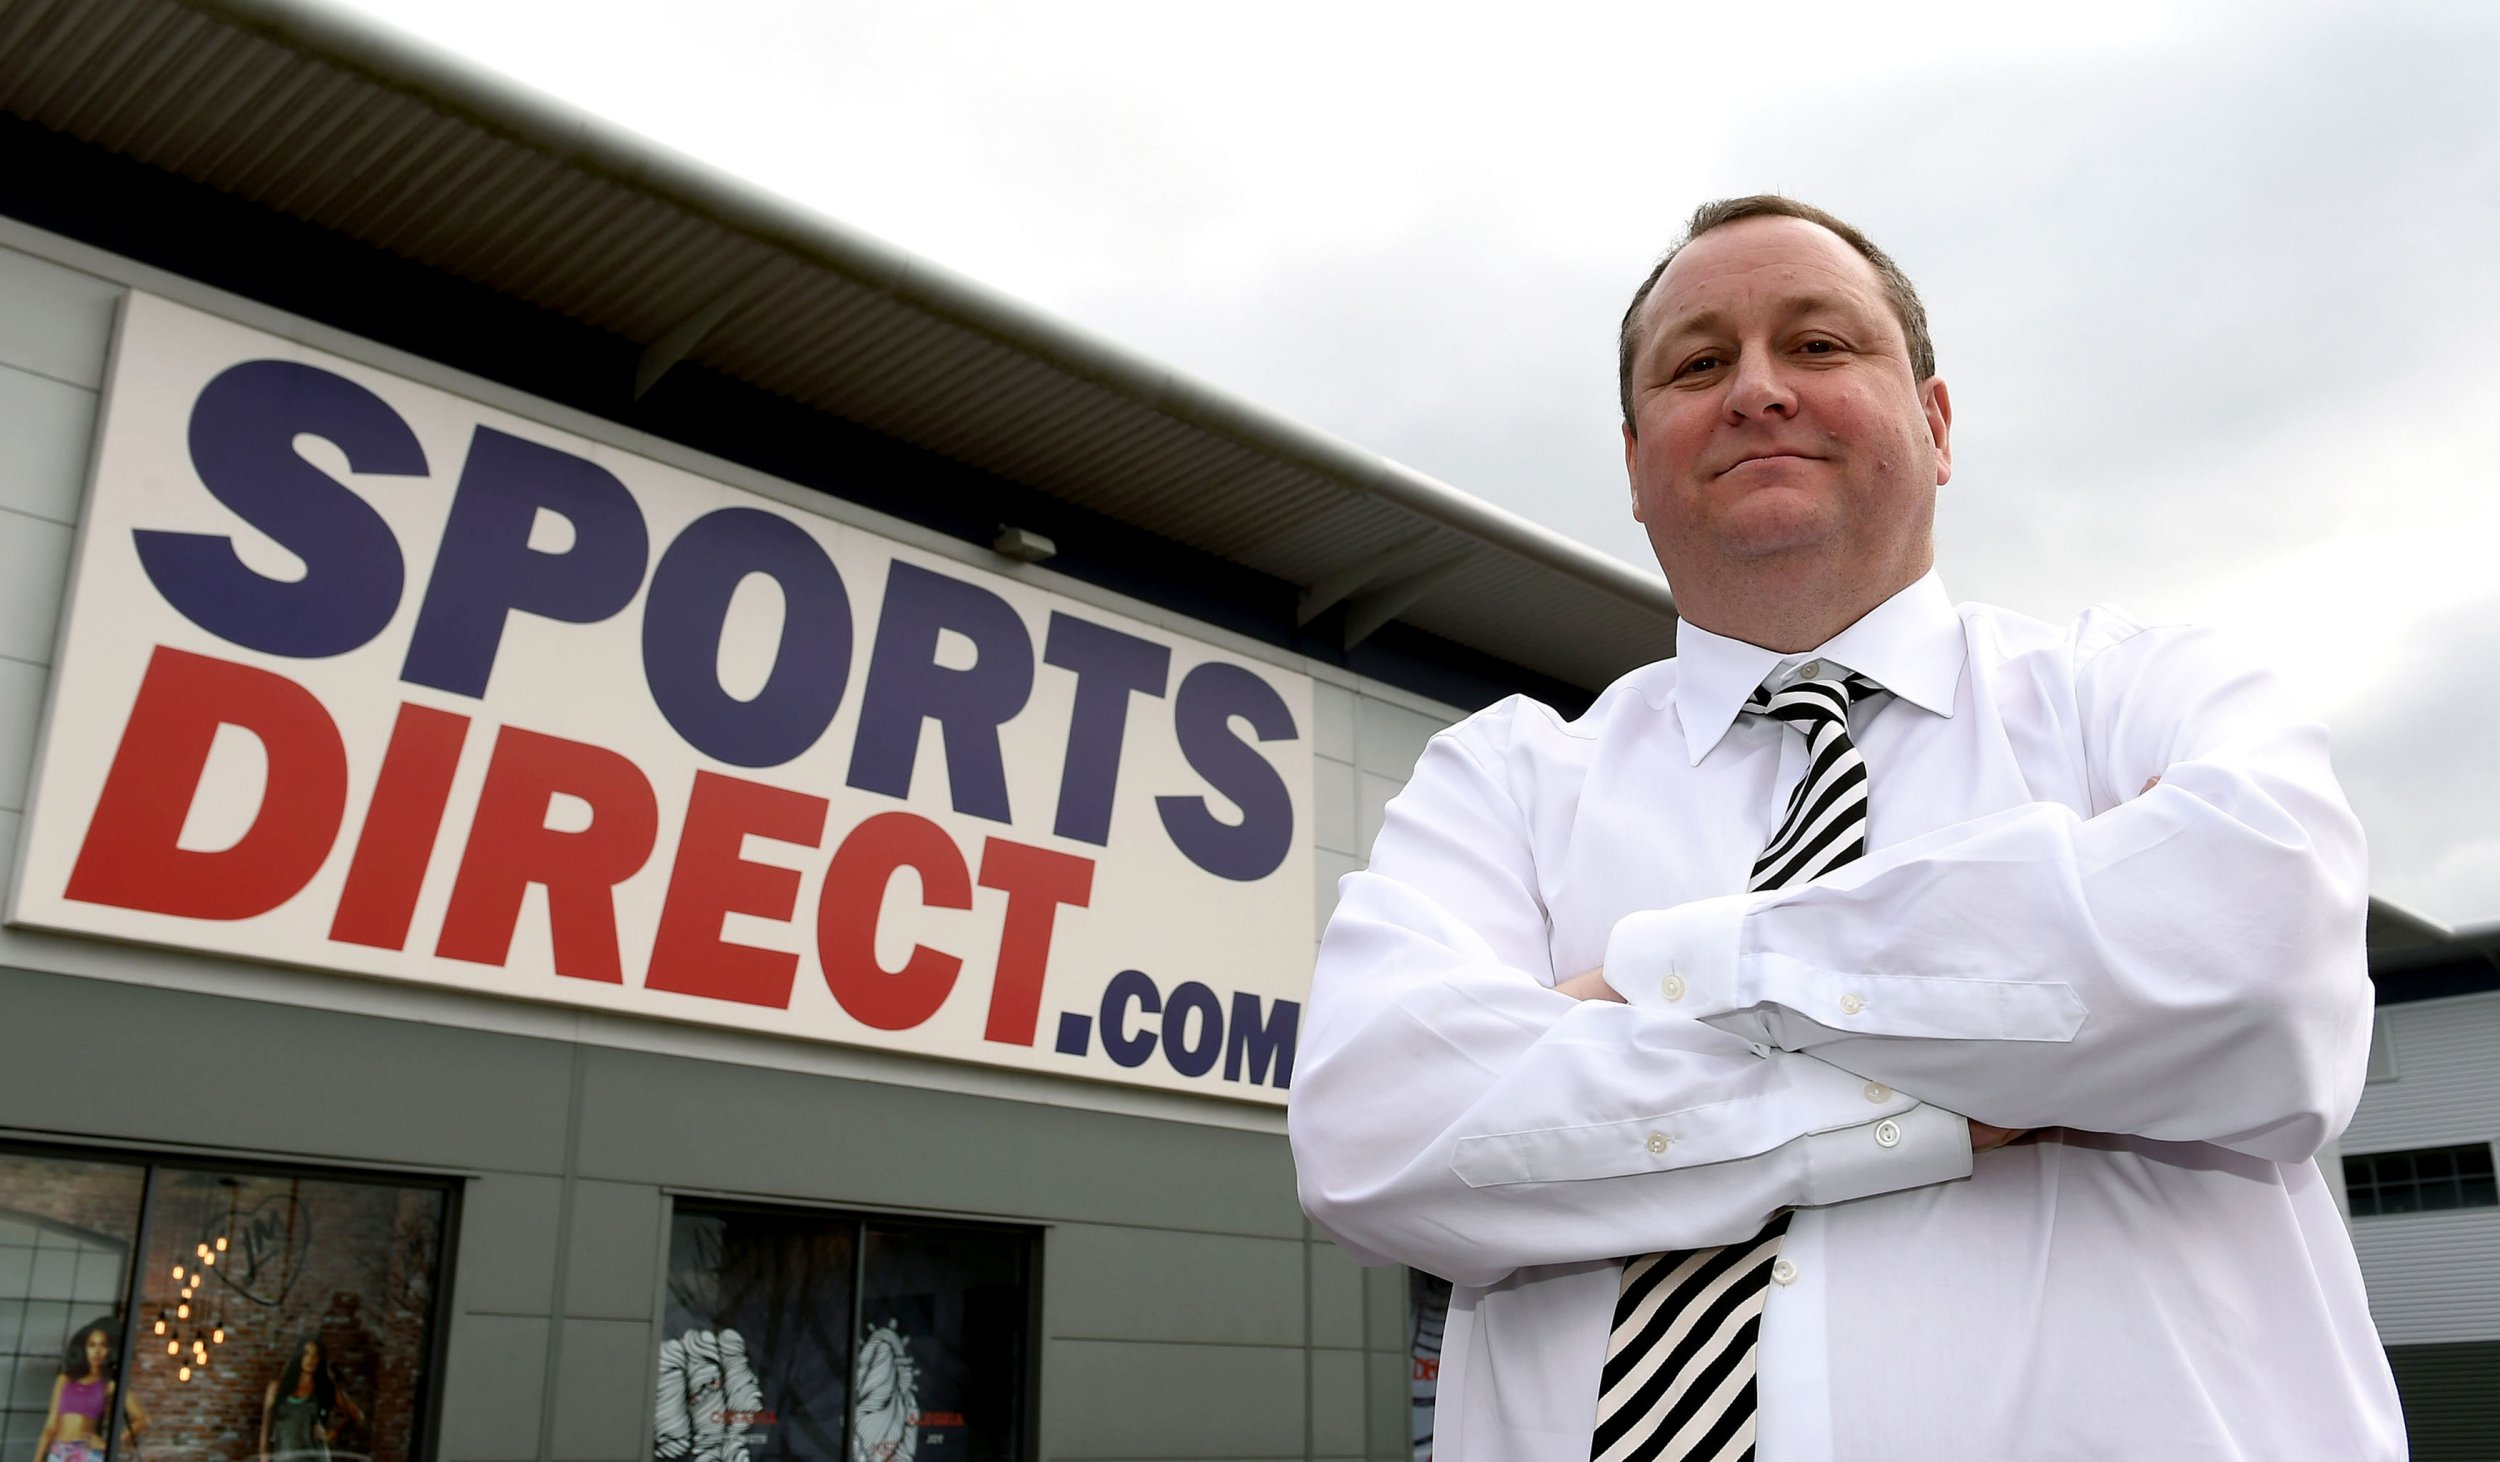 File photo dated 21/03/16 of Sports Direct founder Mike Ashley, as the company has lost its battle against former MP Iain Wright after parliamentary authorities refused to investigate claims that he helped wipe millions off the retailer's share price and triggered violent assaults on shop staff.